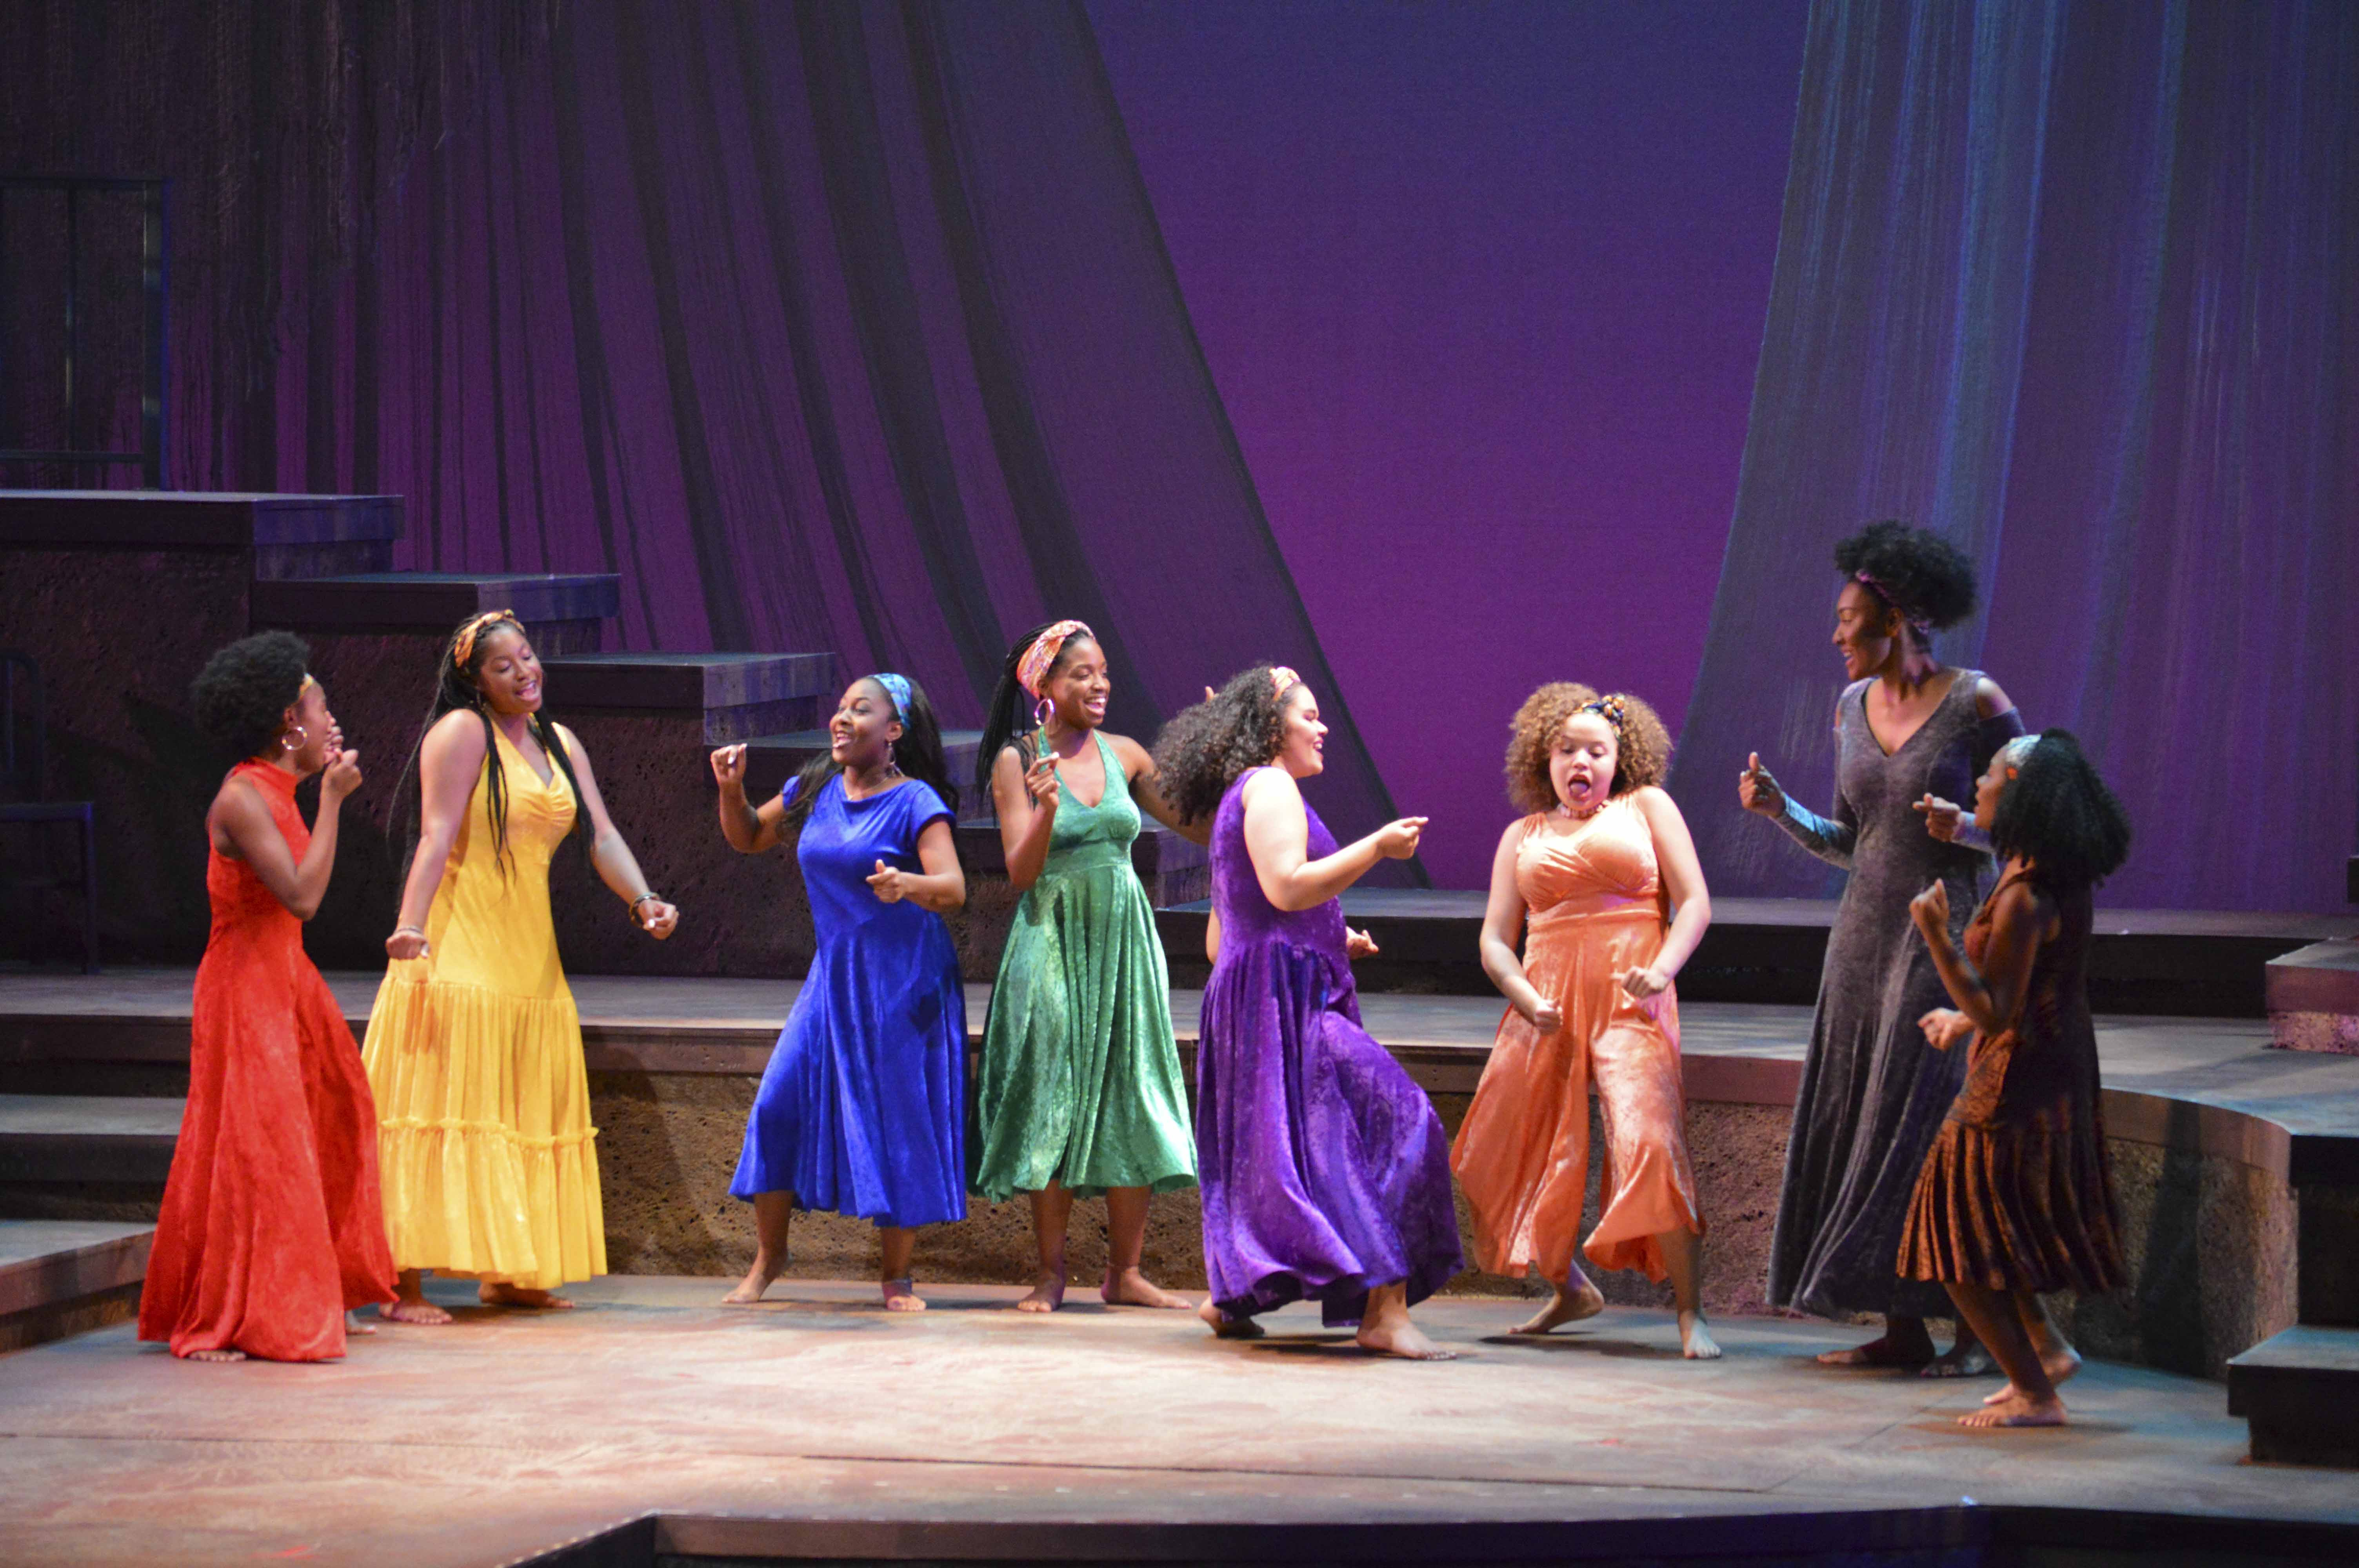 The cast of for colored girls who have considered suicide / when the rainbow is enuf performs a dress rehearsal Wednesday evening. The production opened yesterday at 7:30 p.m.